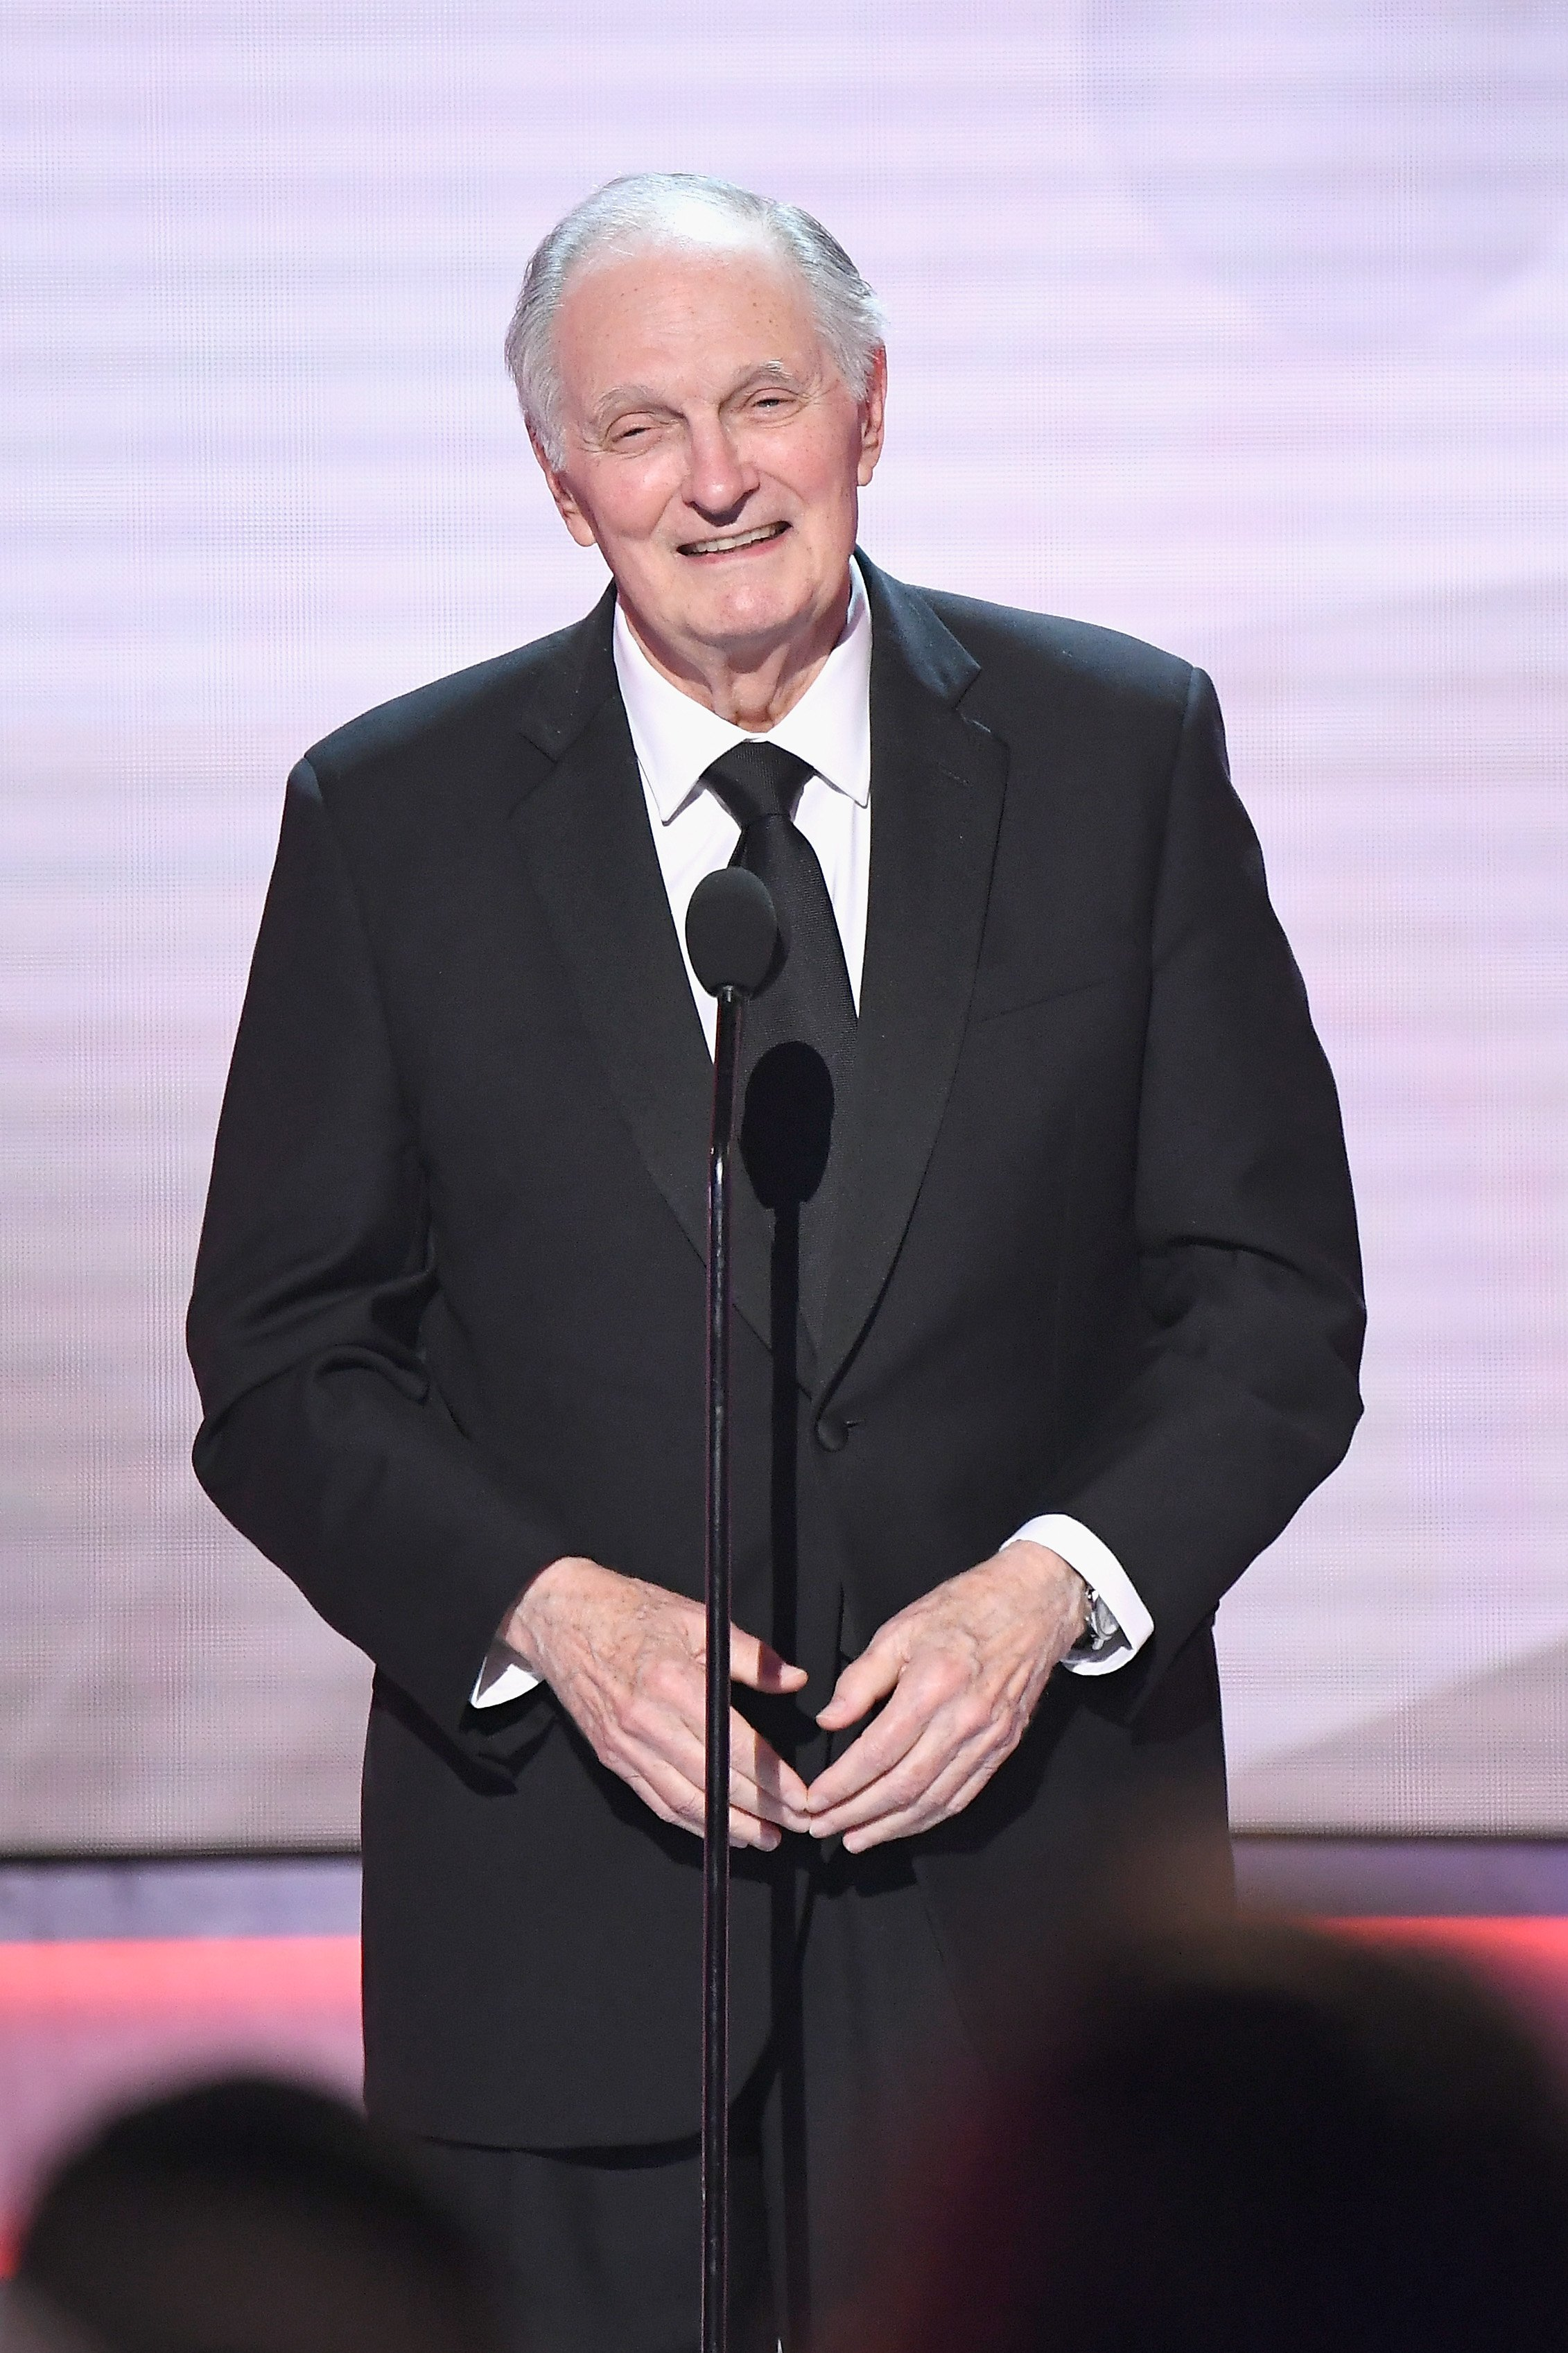 Alan Alda receive the Lifetime Achievement Awards at the Screen Actors Guild Awards in Los Angeles on January 27, 2019 | Photo: Getty Images